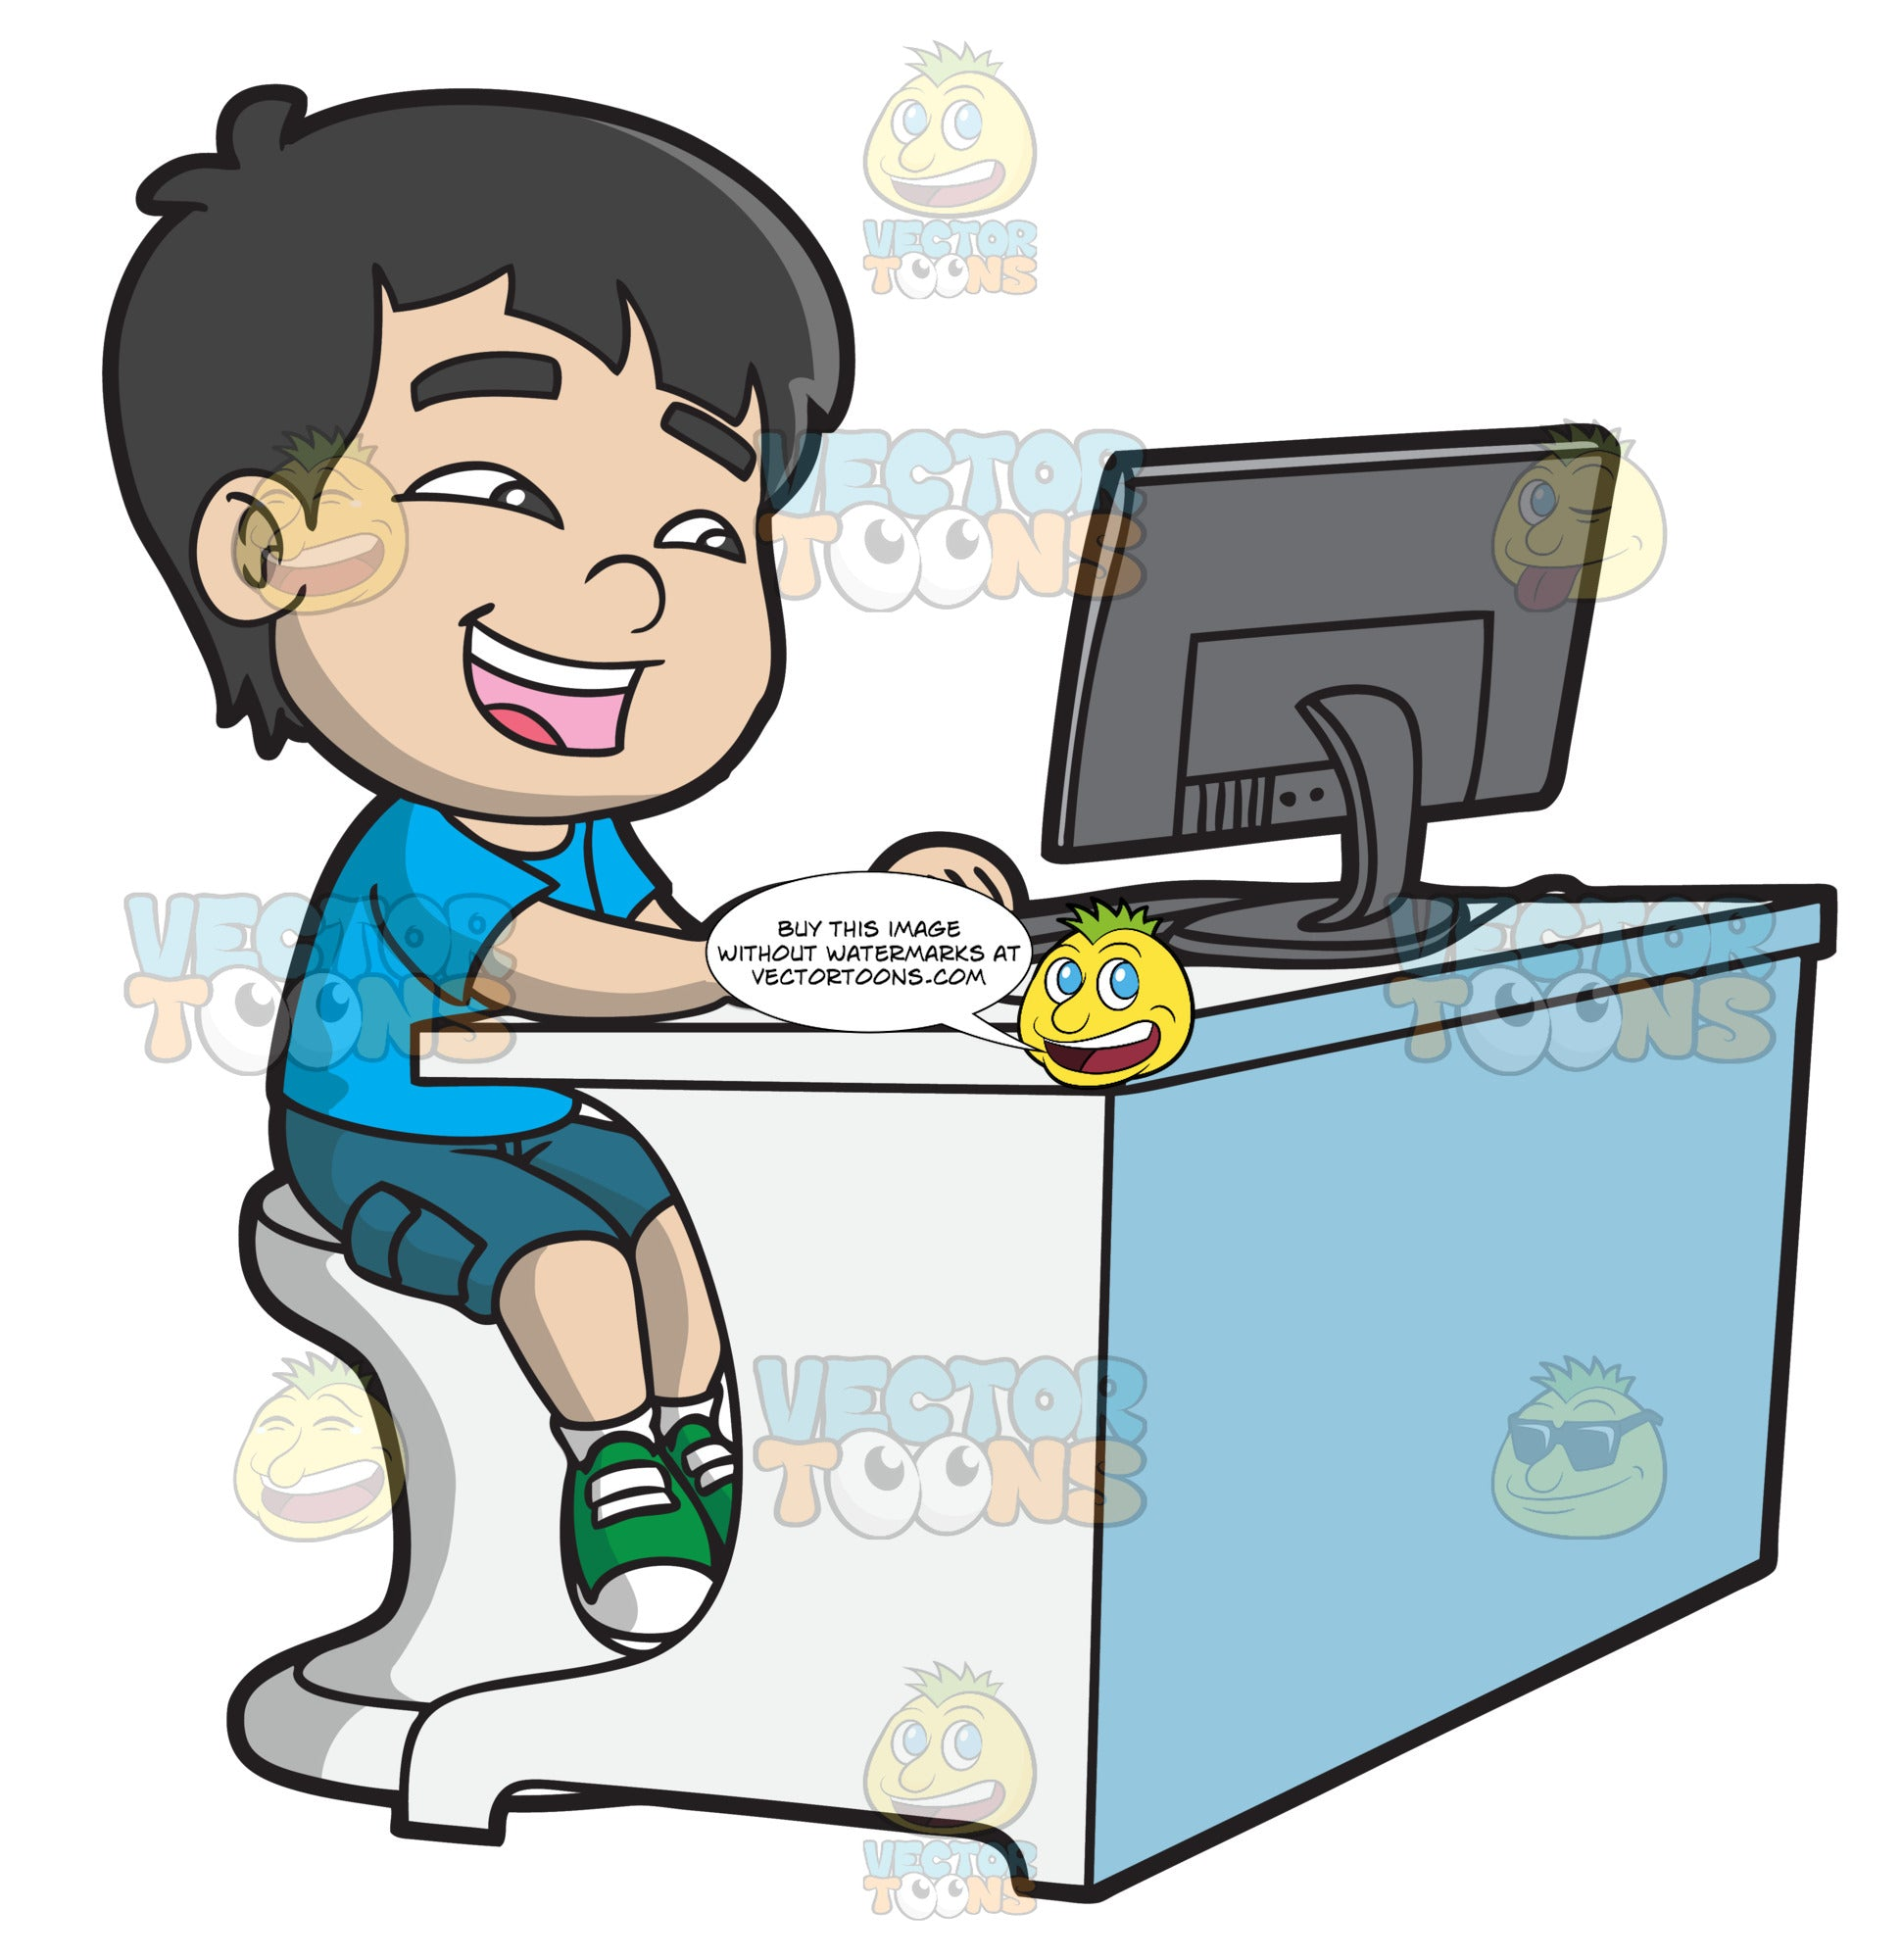 Funny Cartoon Images Of Boys a boy watching a funny video using a desktop computer